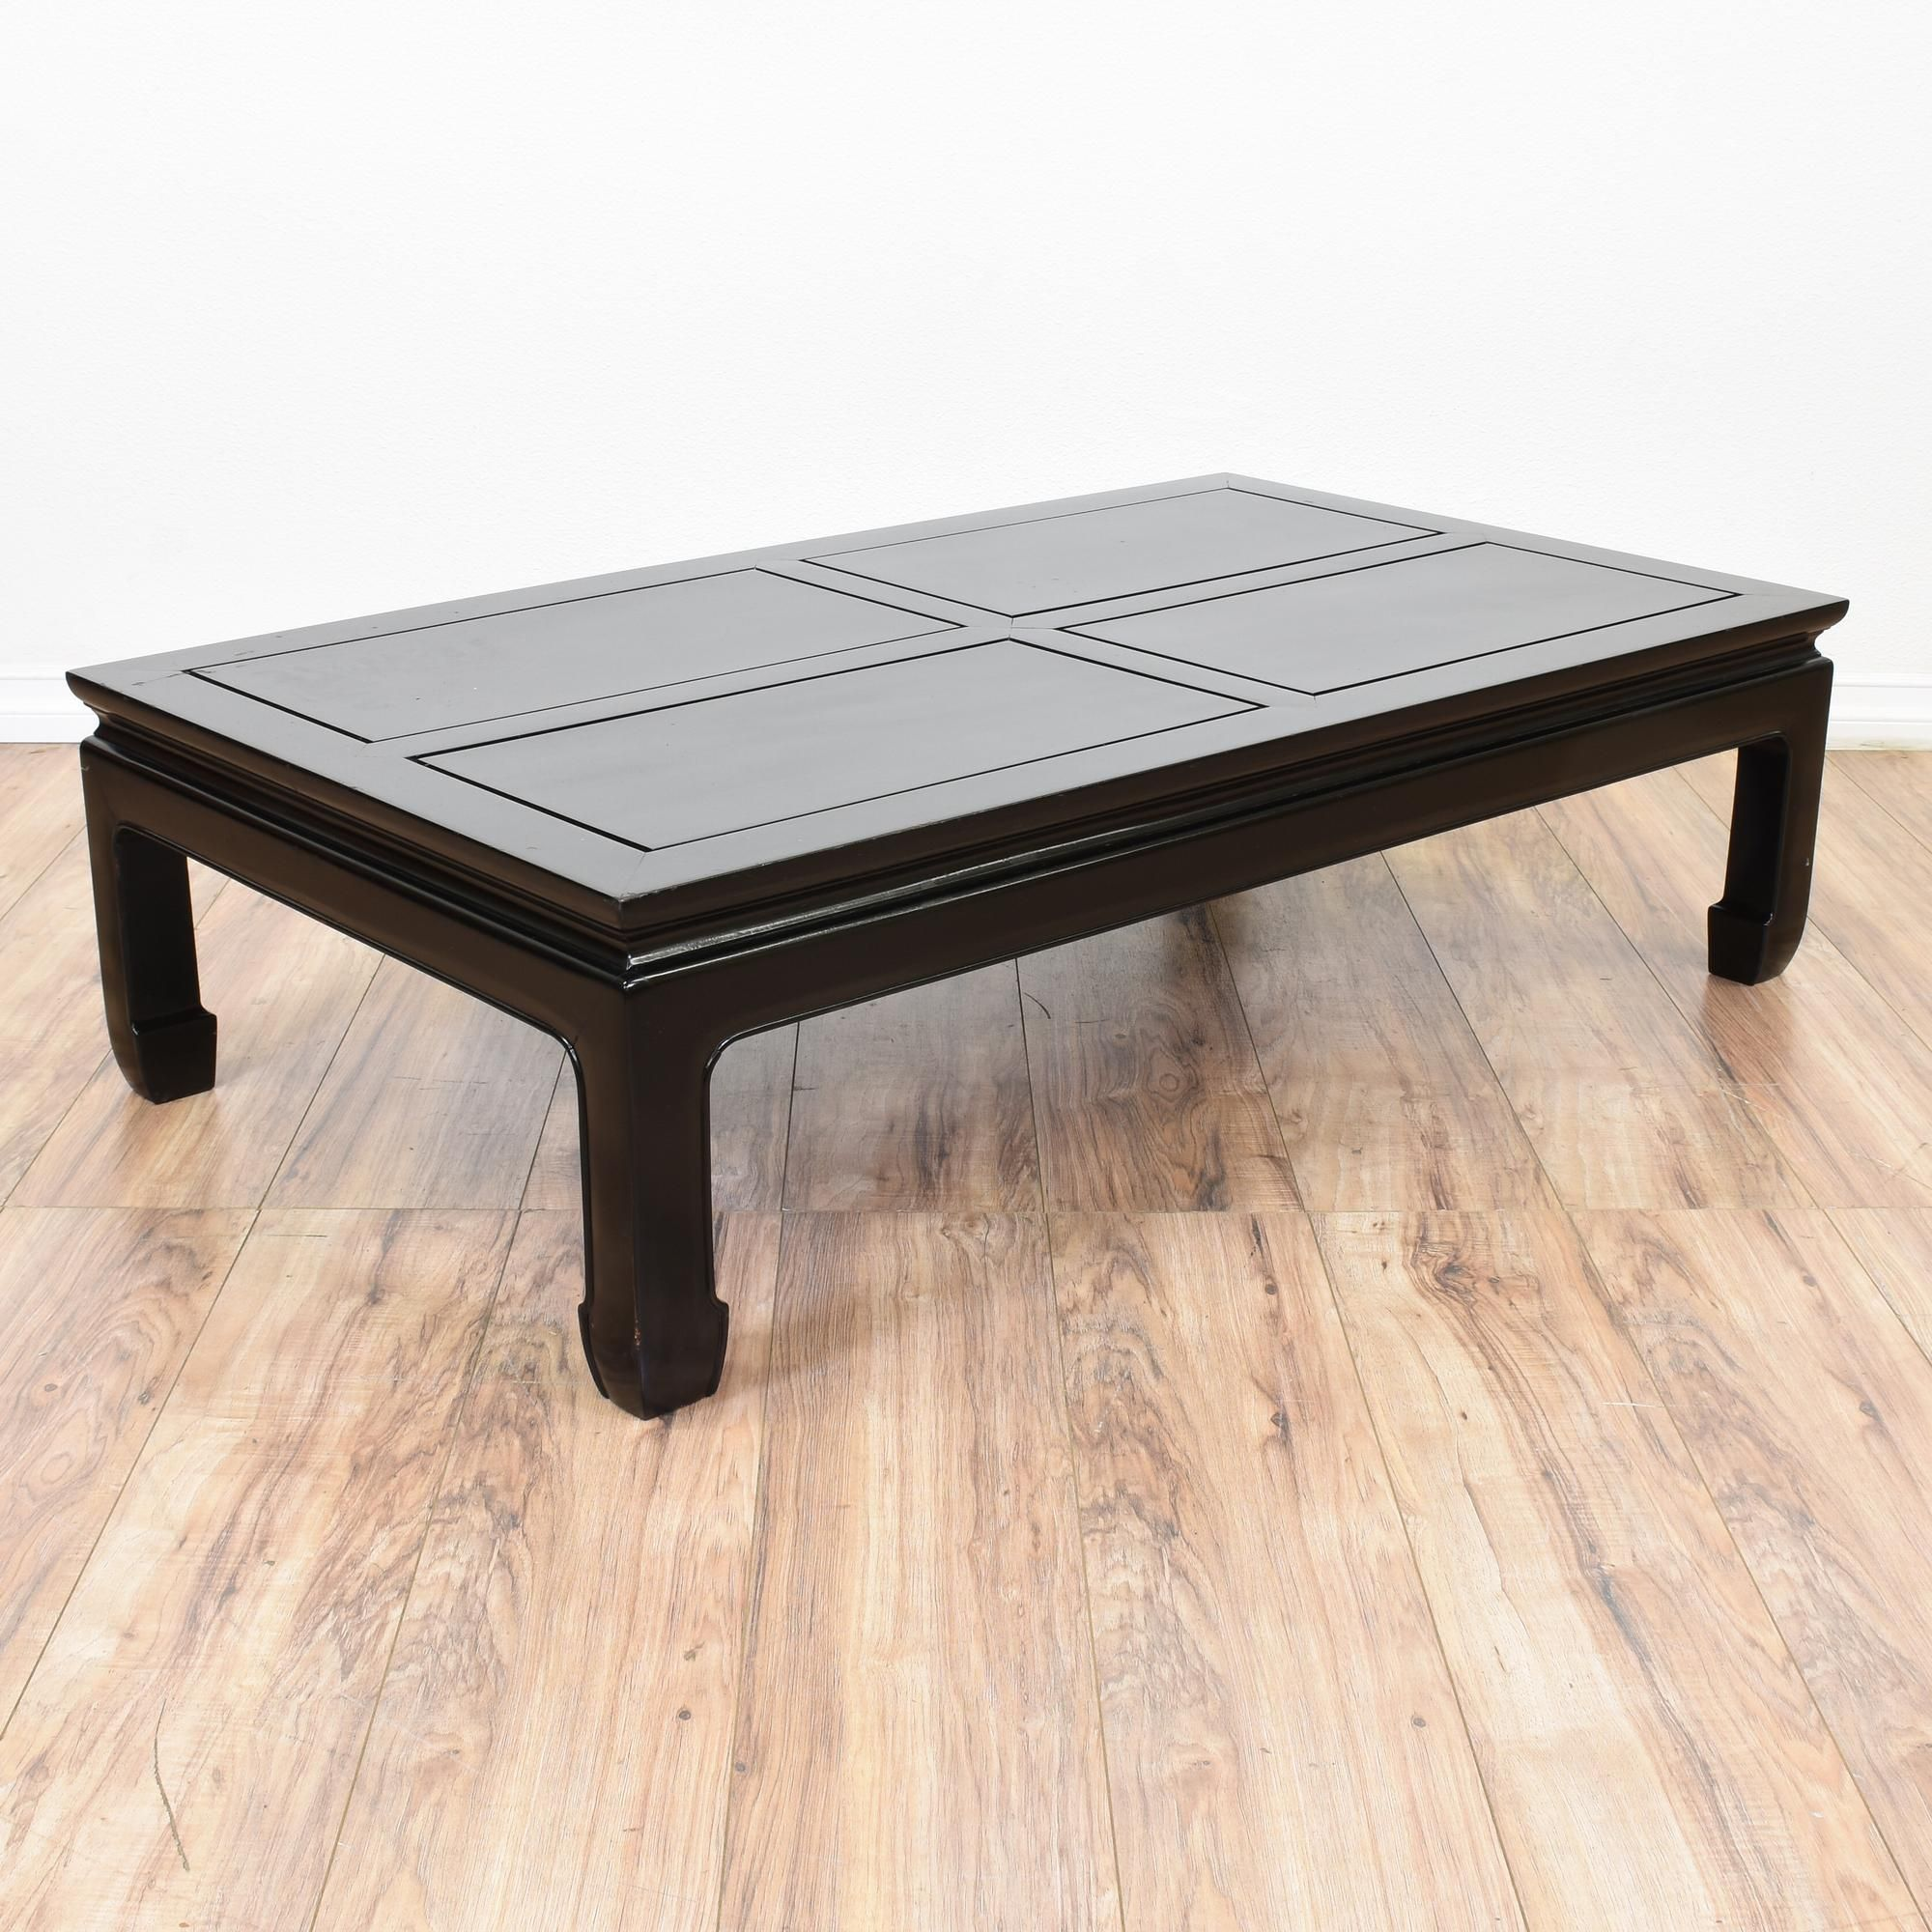 This Asian Style Coffee Table Is Featured In A Solid Wood With Glossy Black Lacquered Finish Good Condition Carved Trim